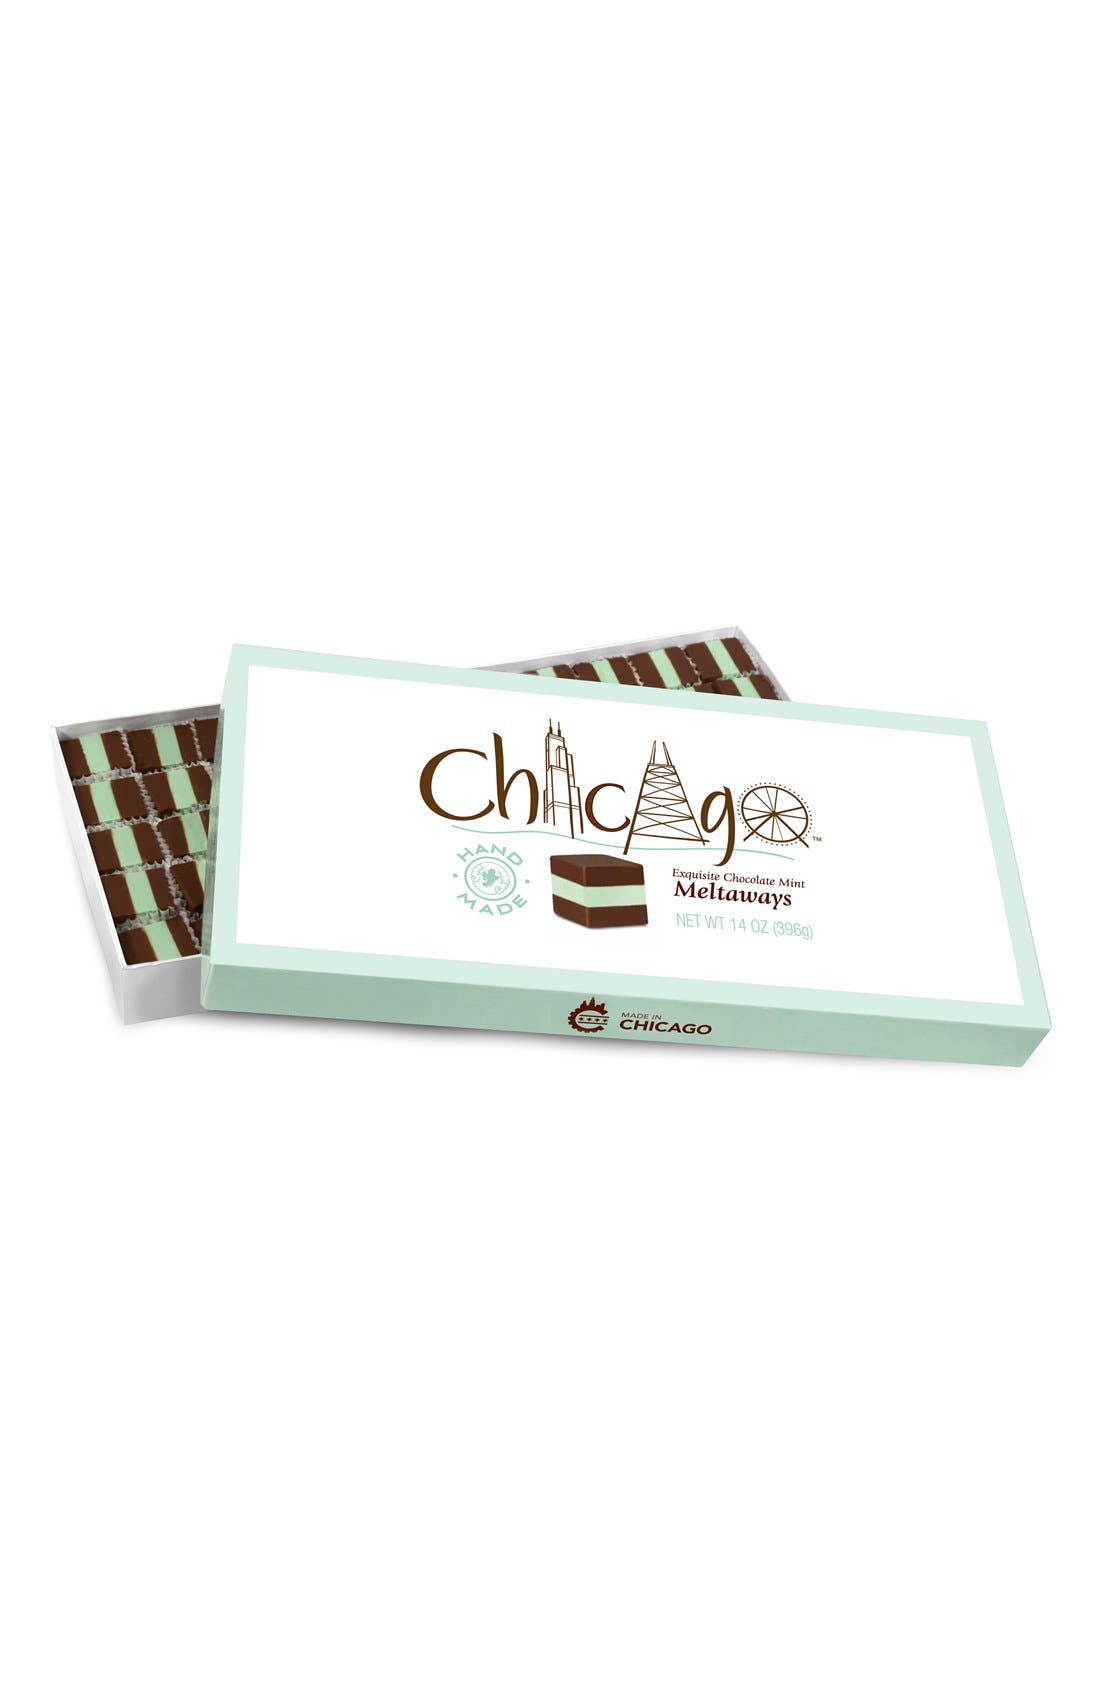 Alternate Image 1 Selected - Chicago Classic Confections Chocolate Mint Meltaways